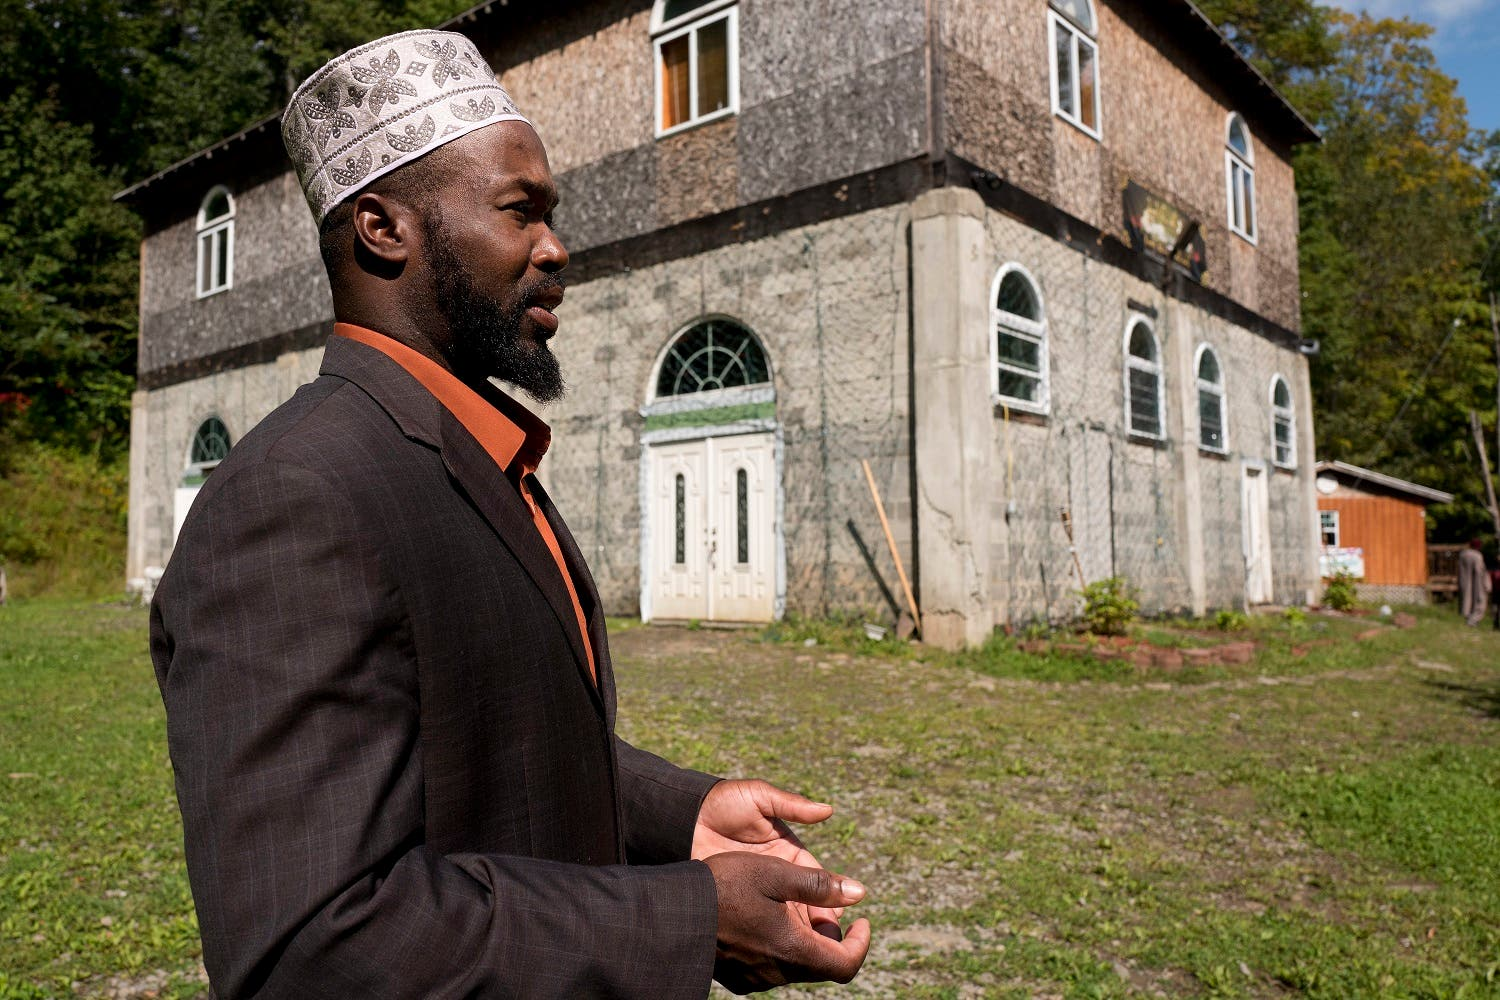 'Terrorist label' frustrates US Muslim community in the woods